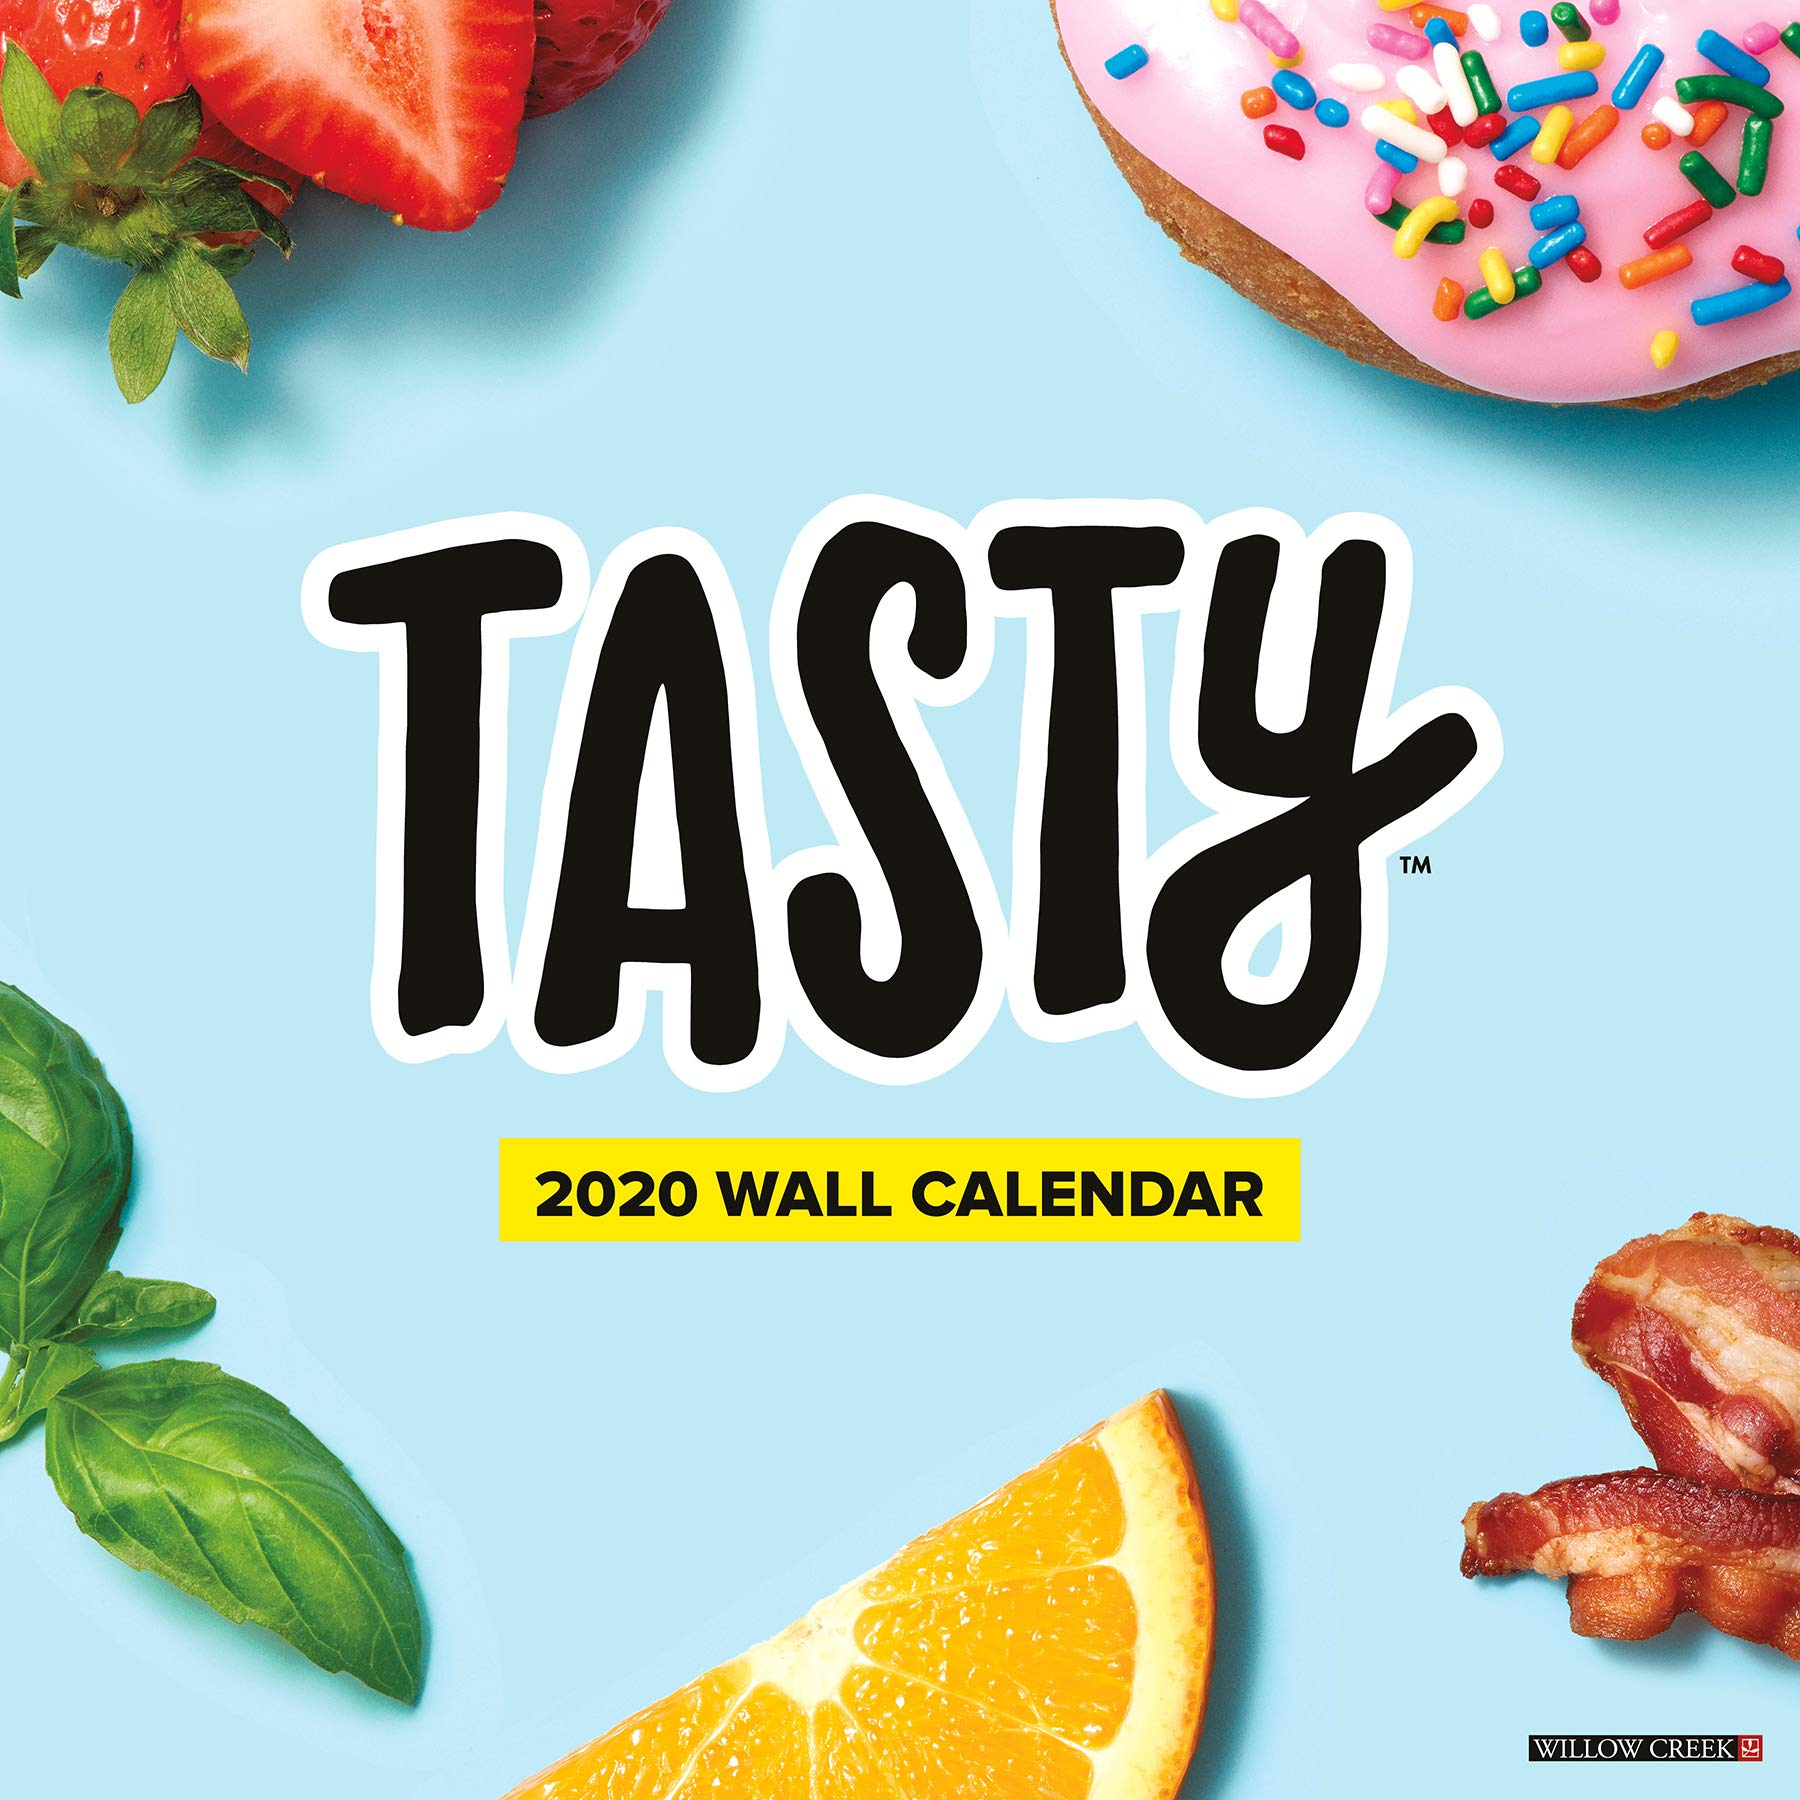 Home Hacks 2020.Tasty 2020 Wall Calendar Tasty 0709786053933 Amazon Com